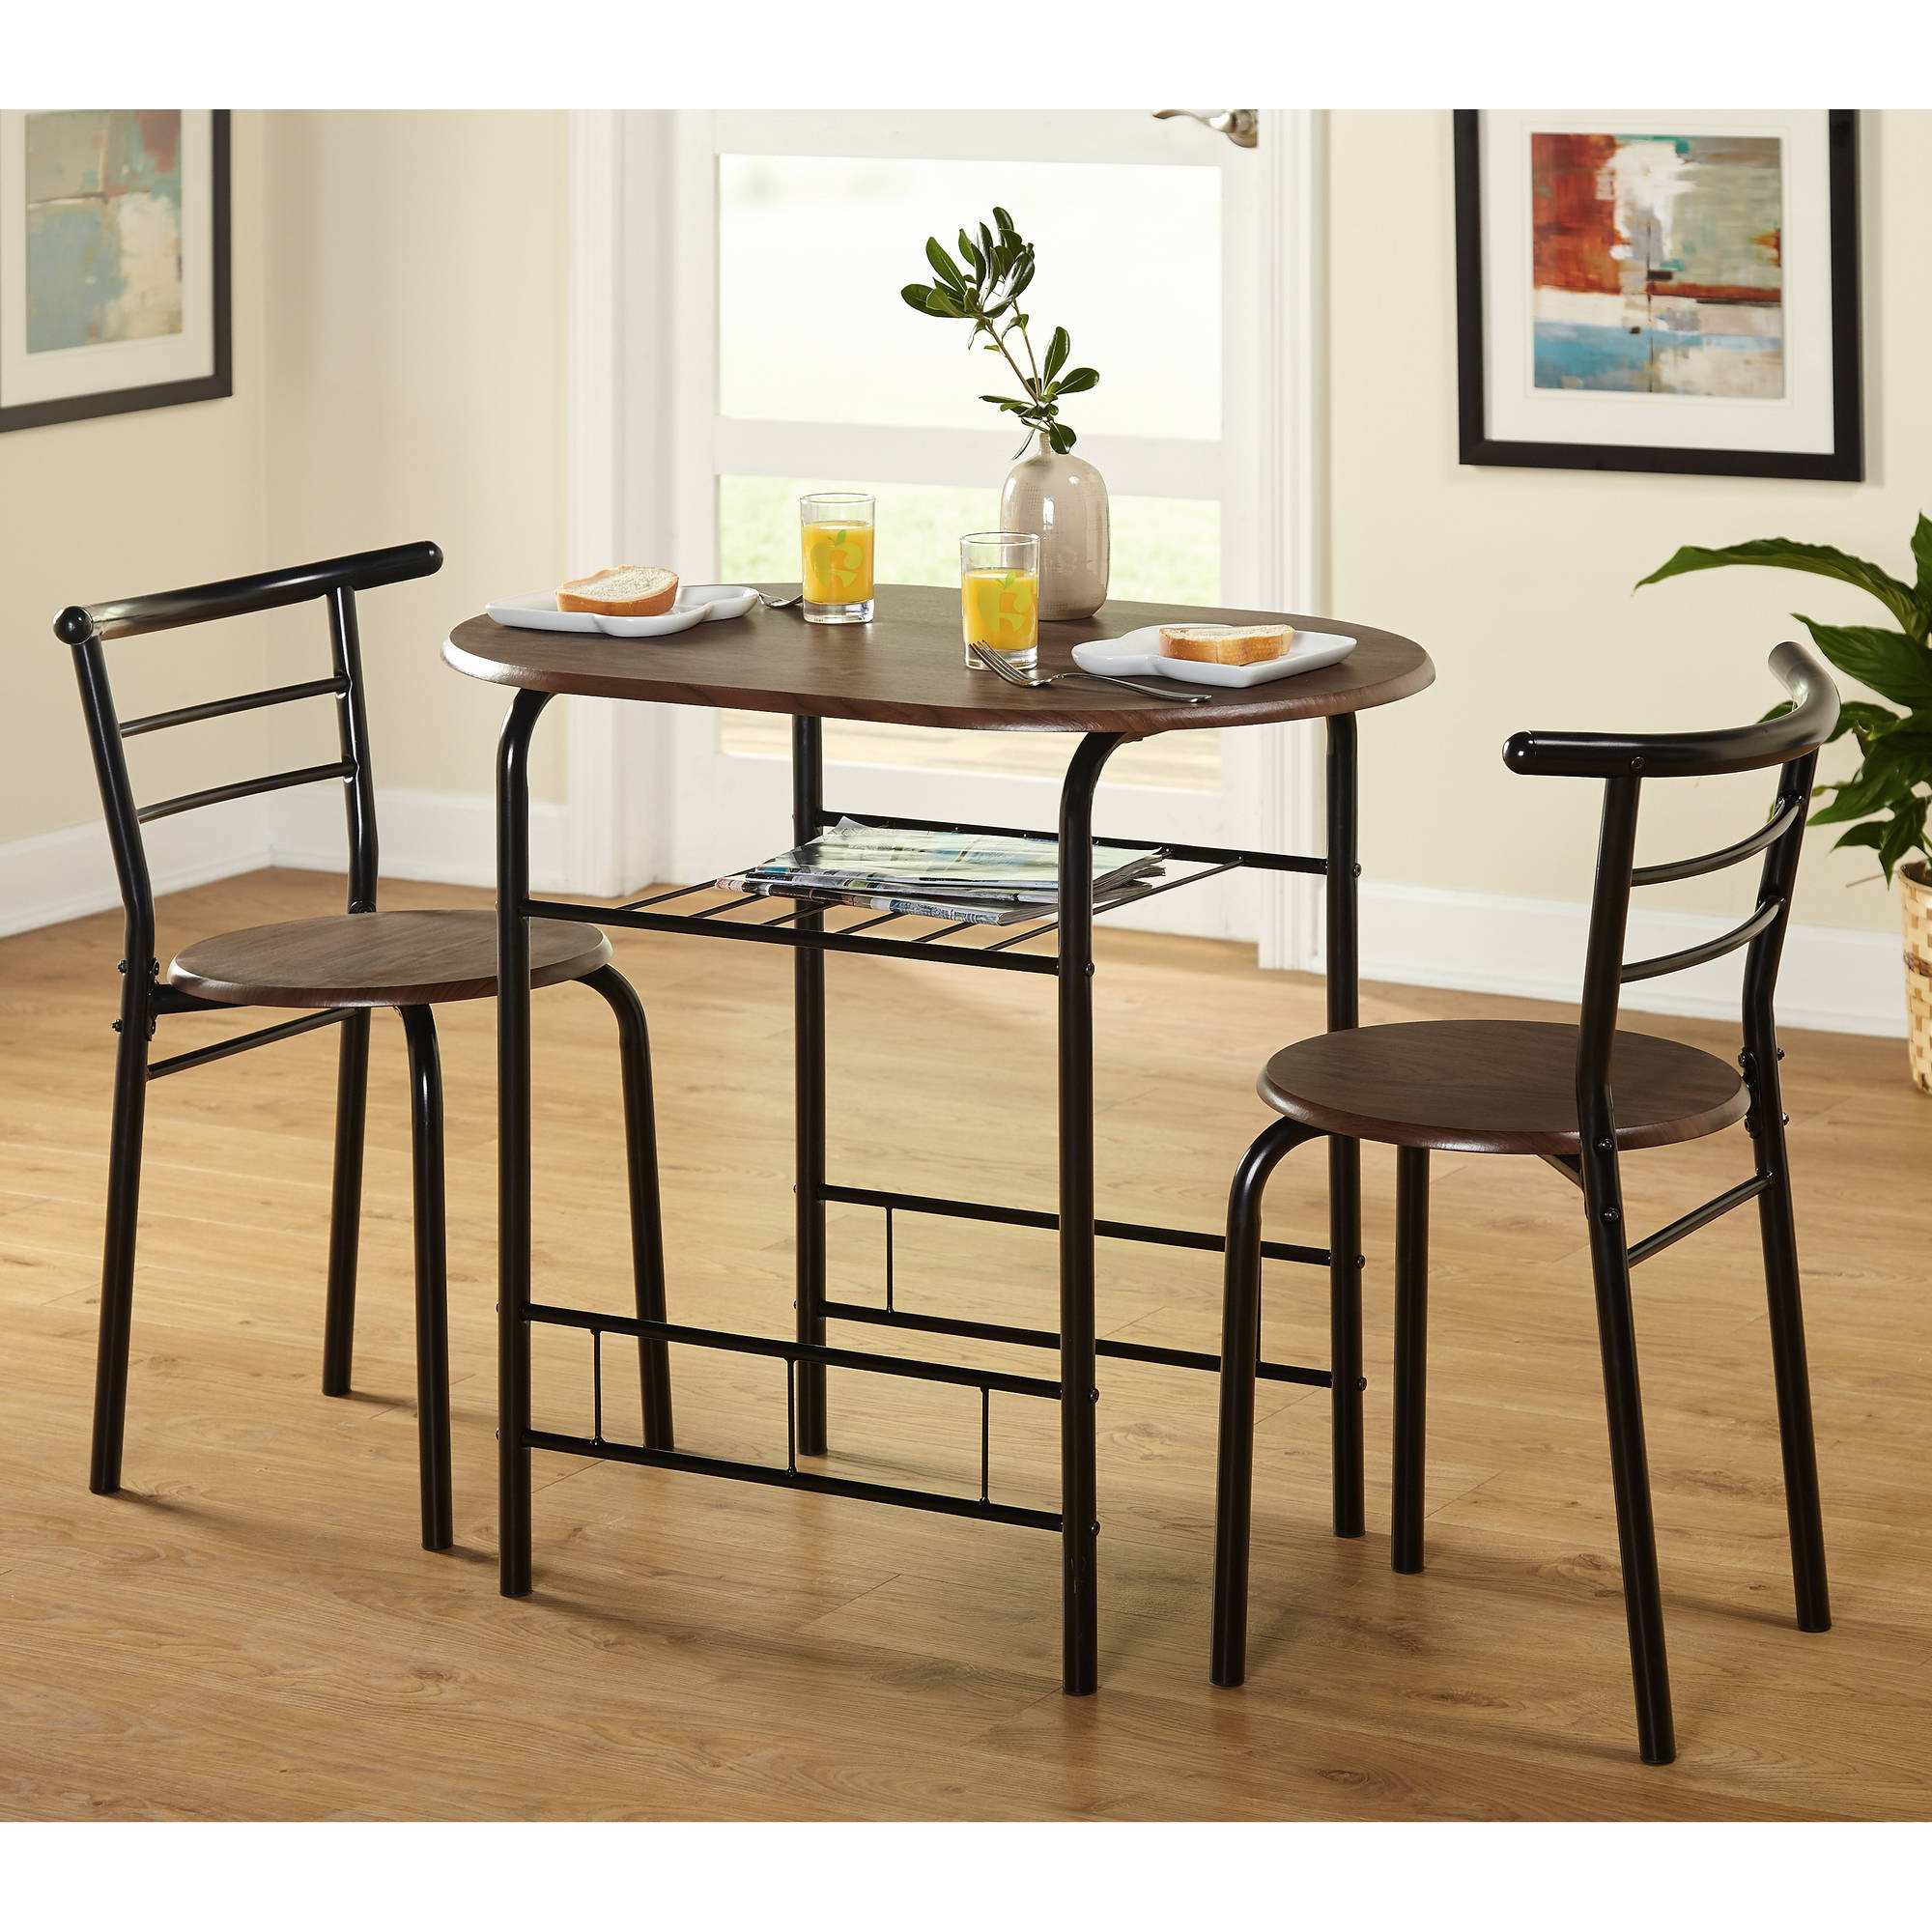 3 Piece Breakfast Dining Sets Within Favorite Tms 3 Piece Bistro Dining Set (View 7 of 20)